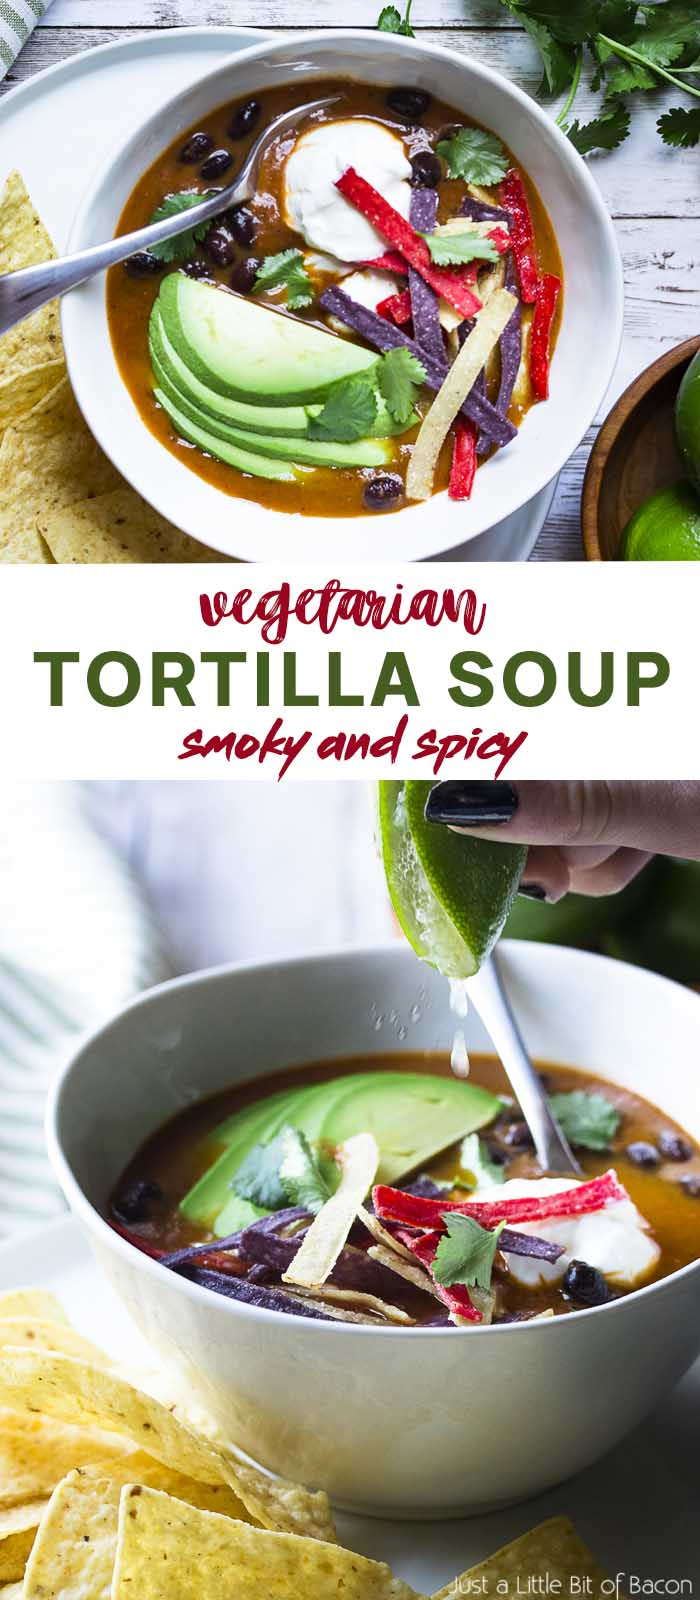 Soup in white bowl with toppings and text overlay - Vegetarian Tortilla Soup.